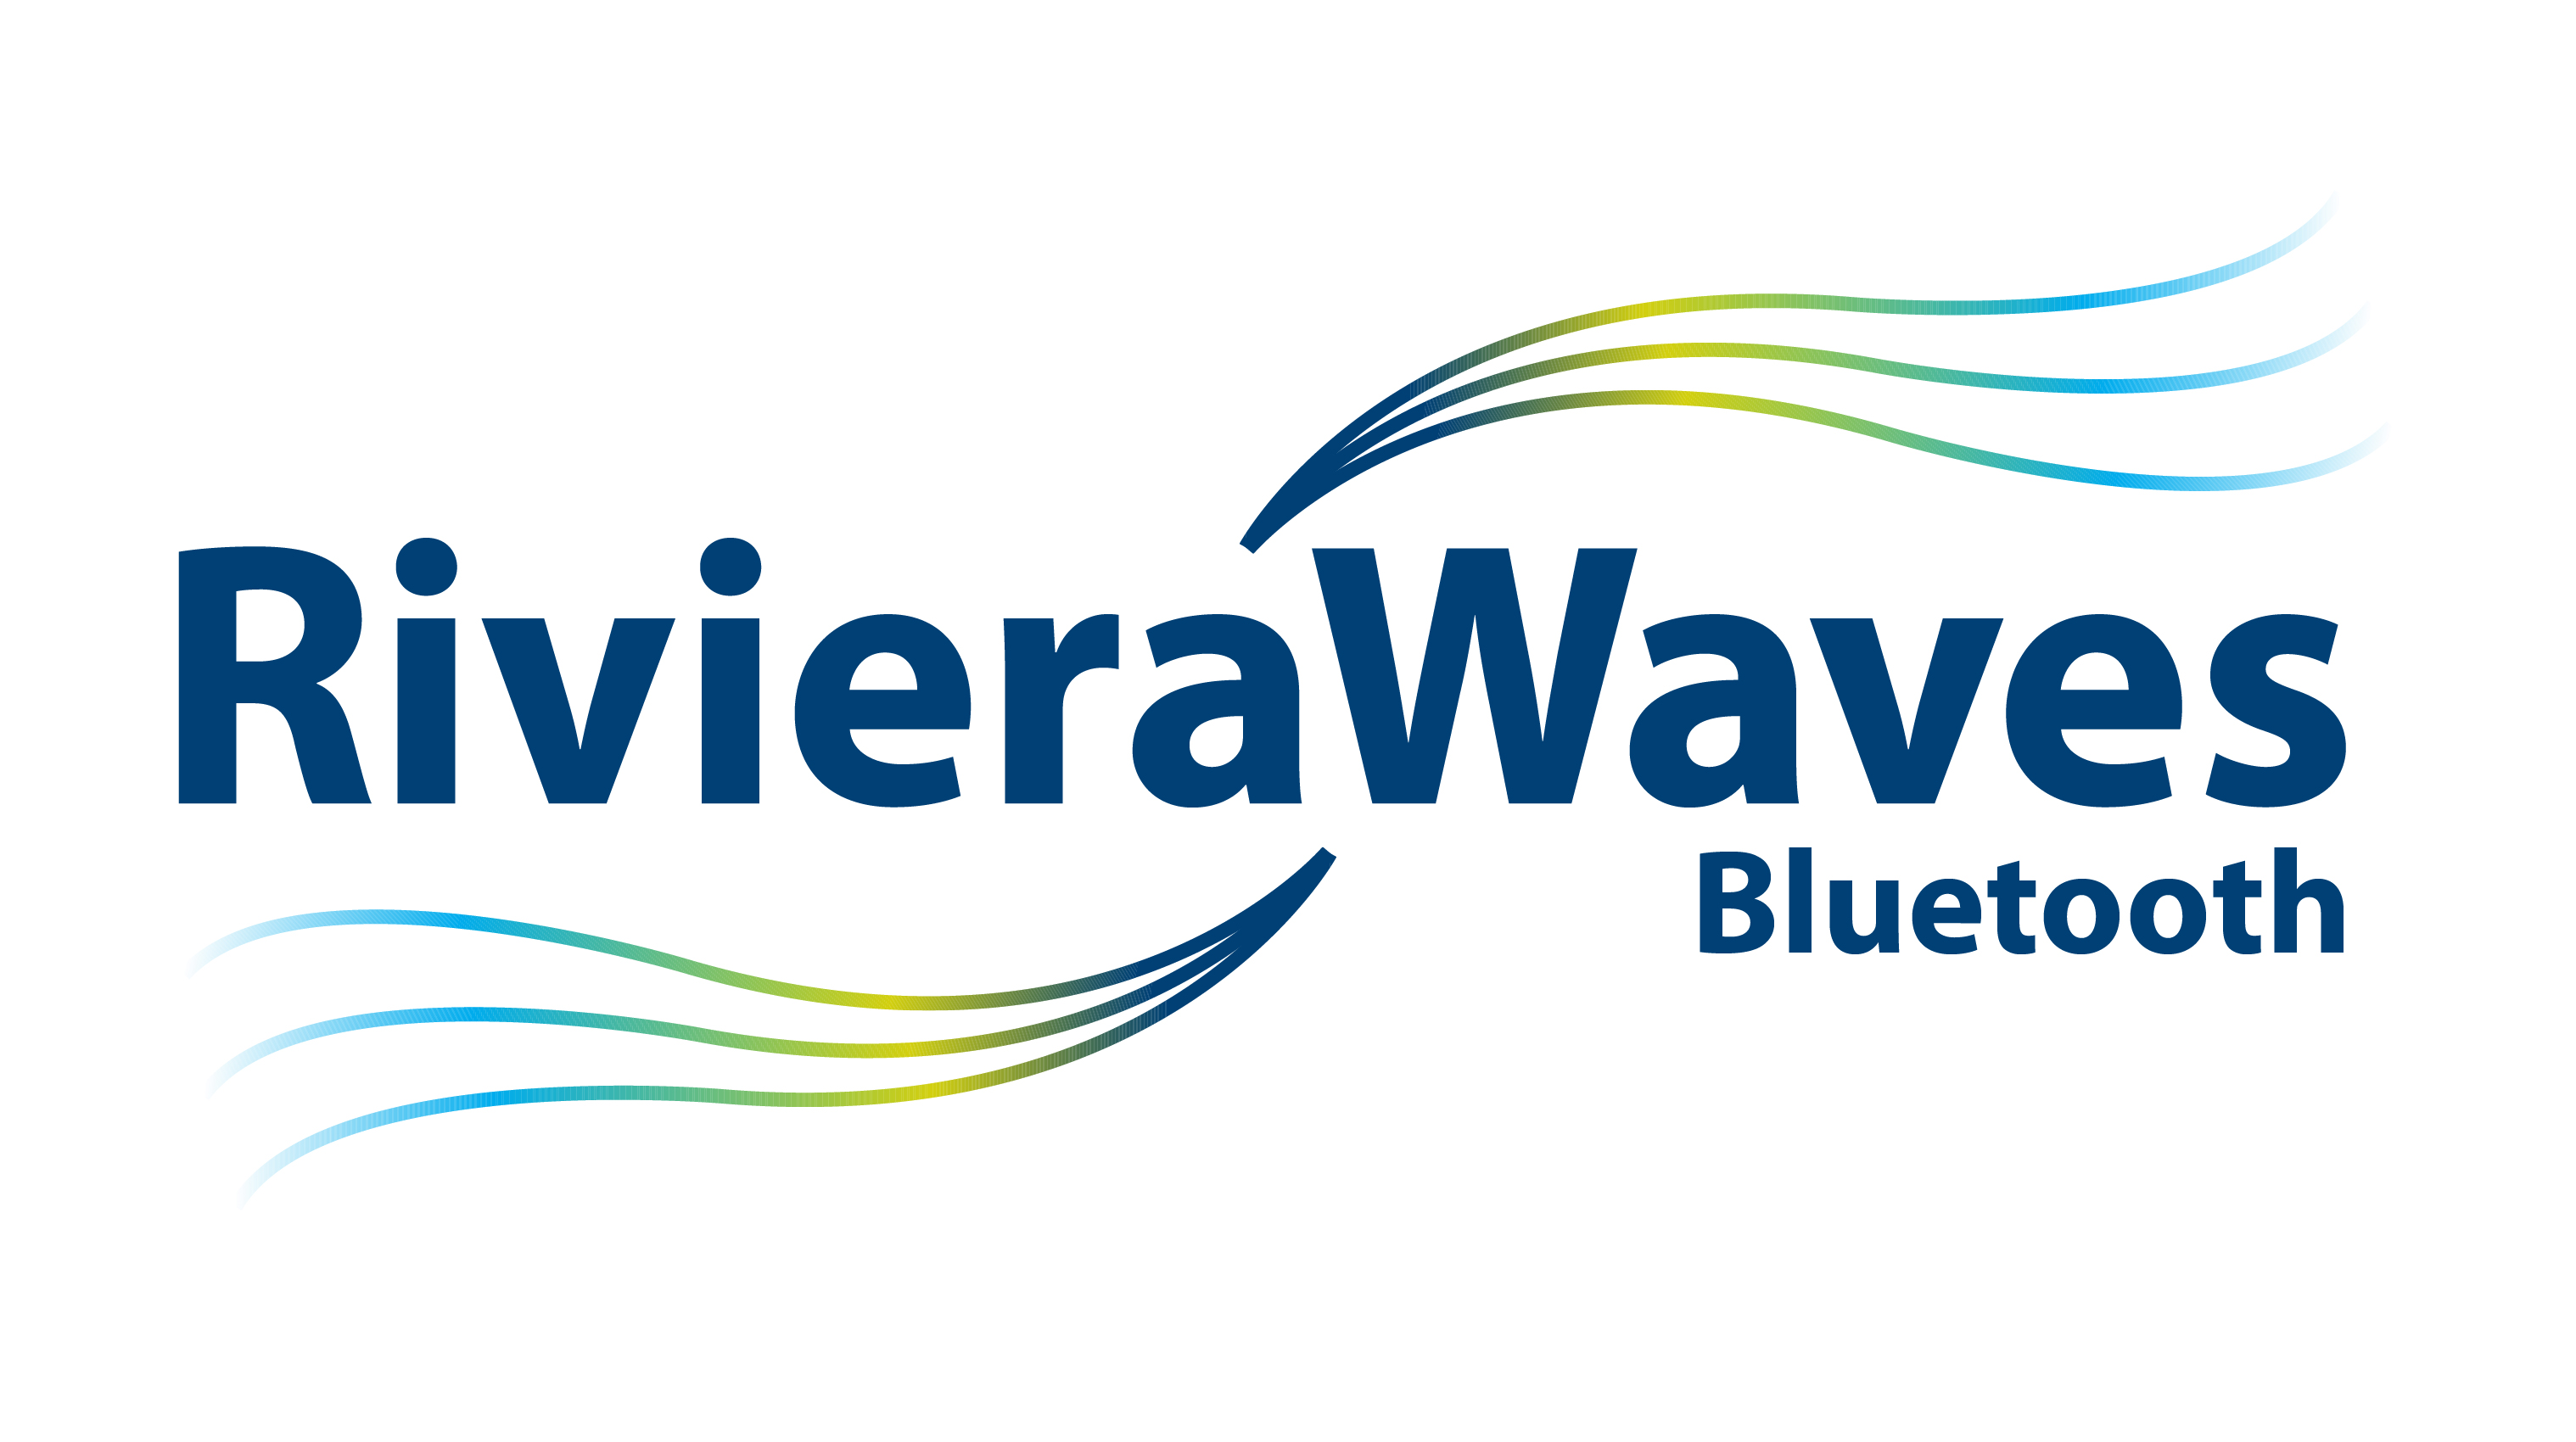 RivieraWaves Bluetooth